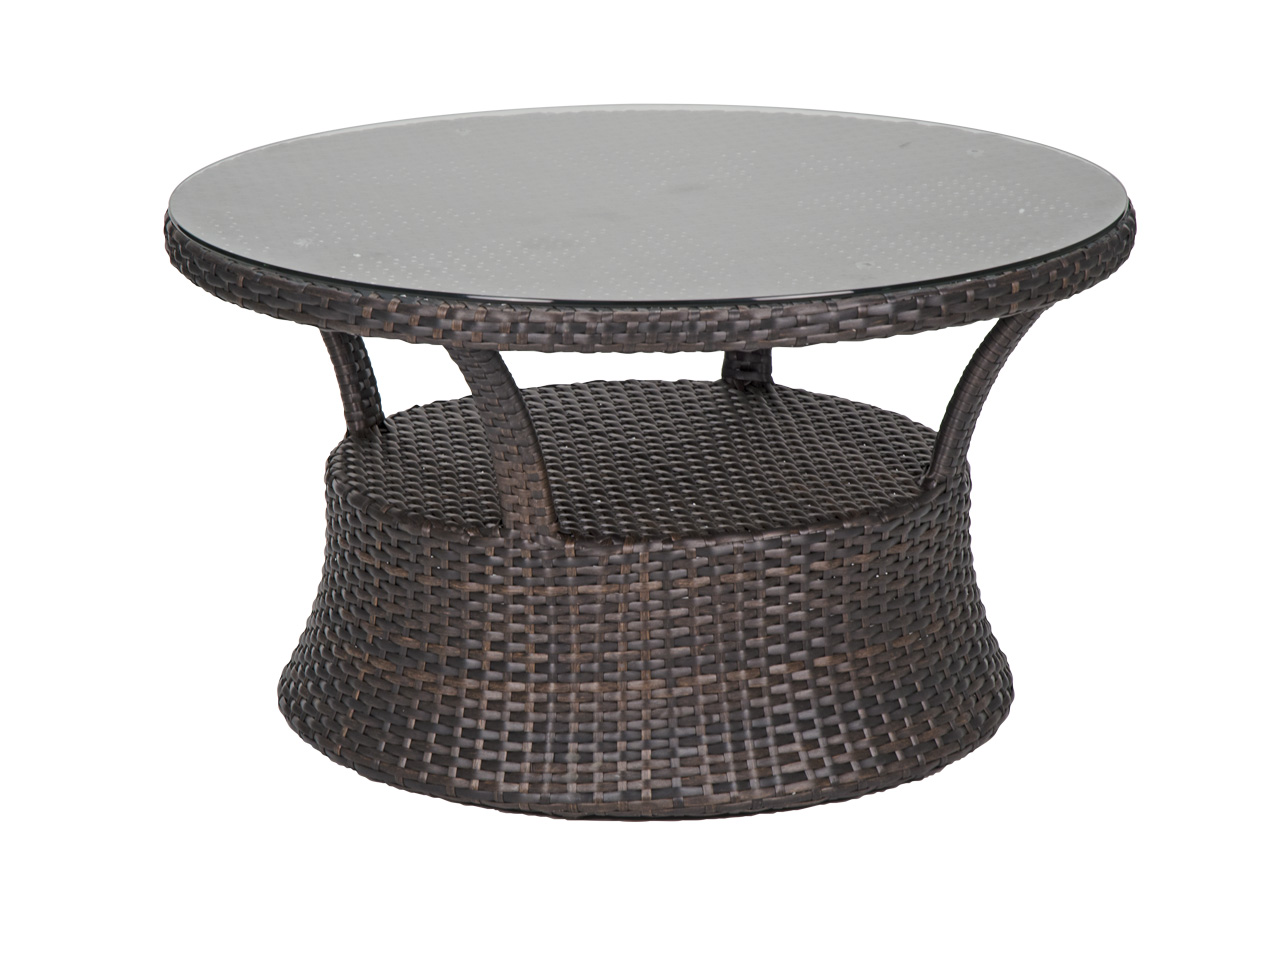 coffee and side tables fortunoff backyard wickr outdoor table with ice bucket san lucas round aluminum woven resin wicker glass top conversation ikea wall cabinets bedroom british